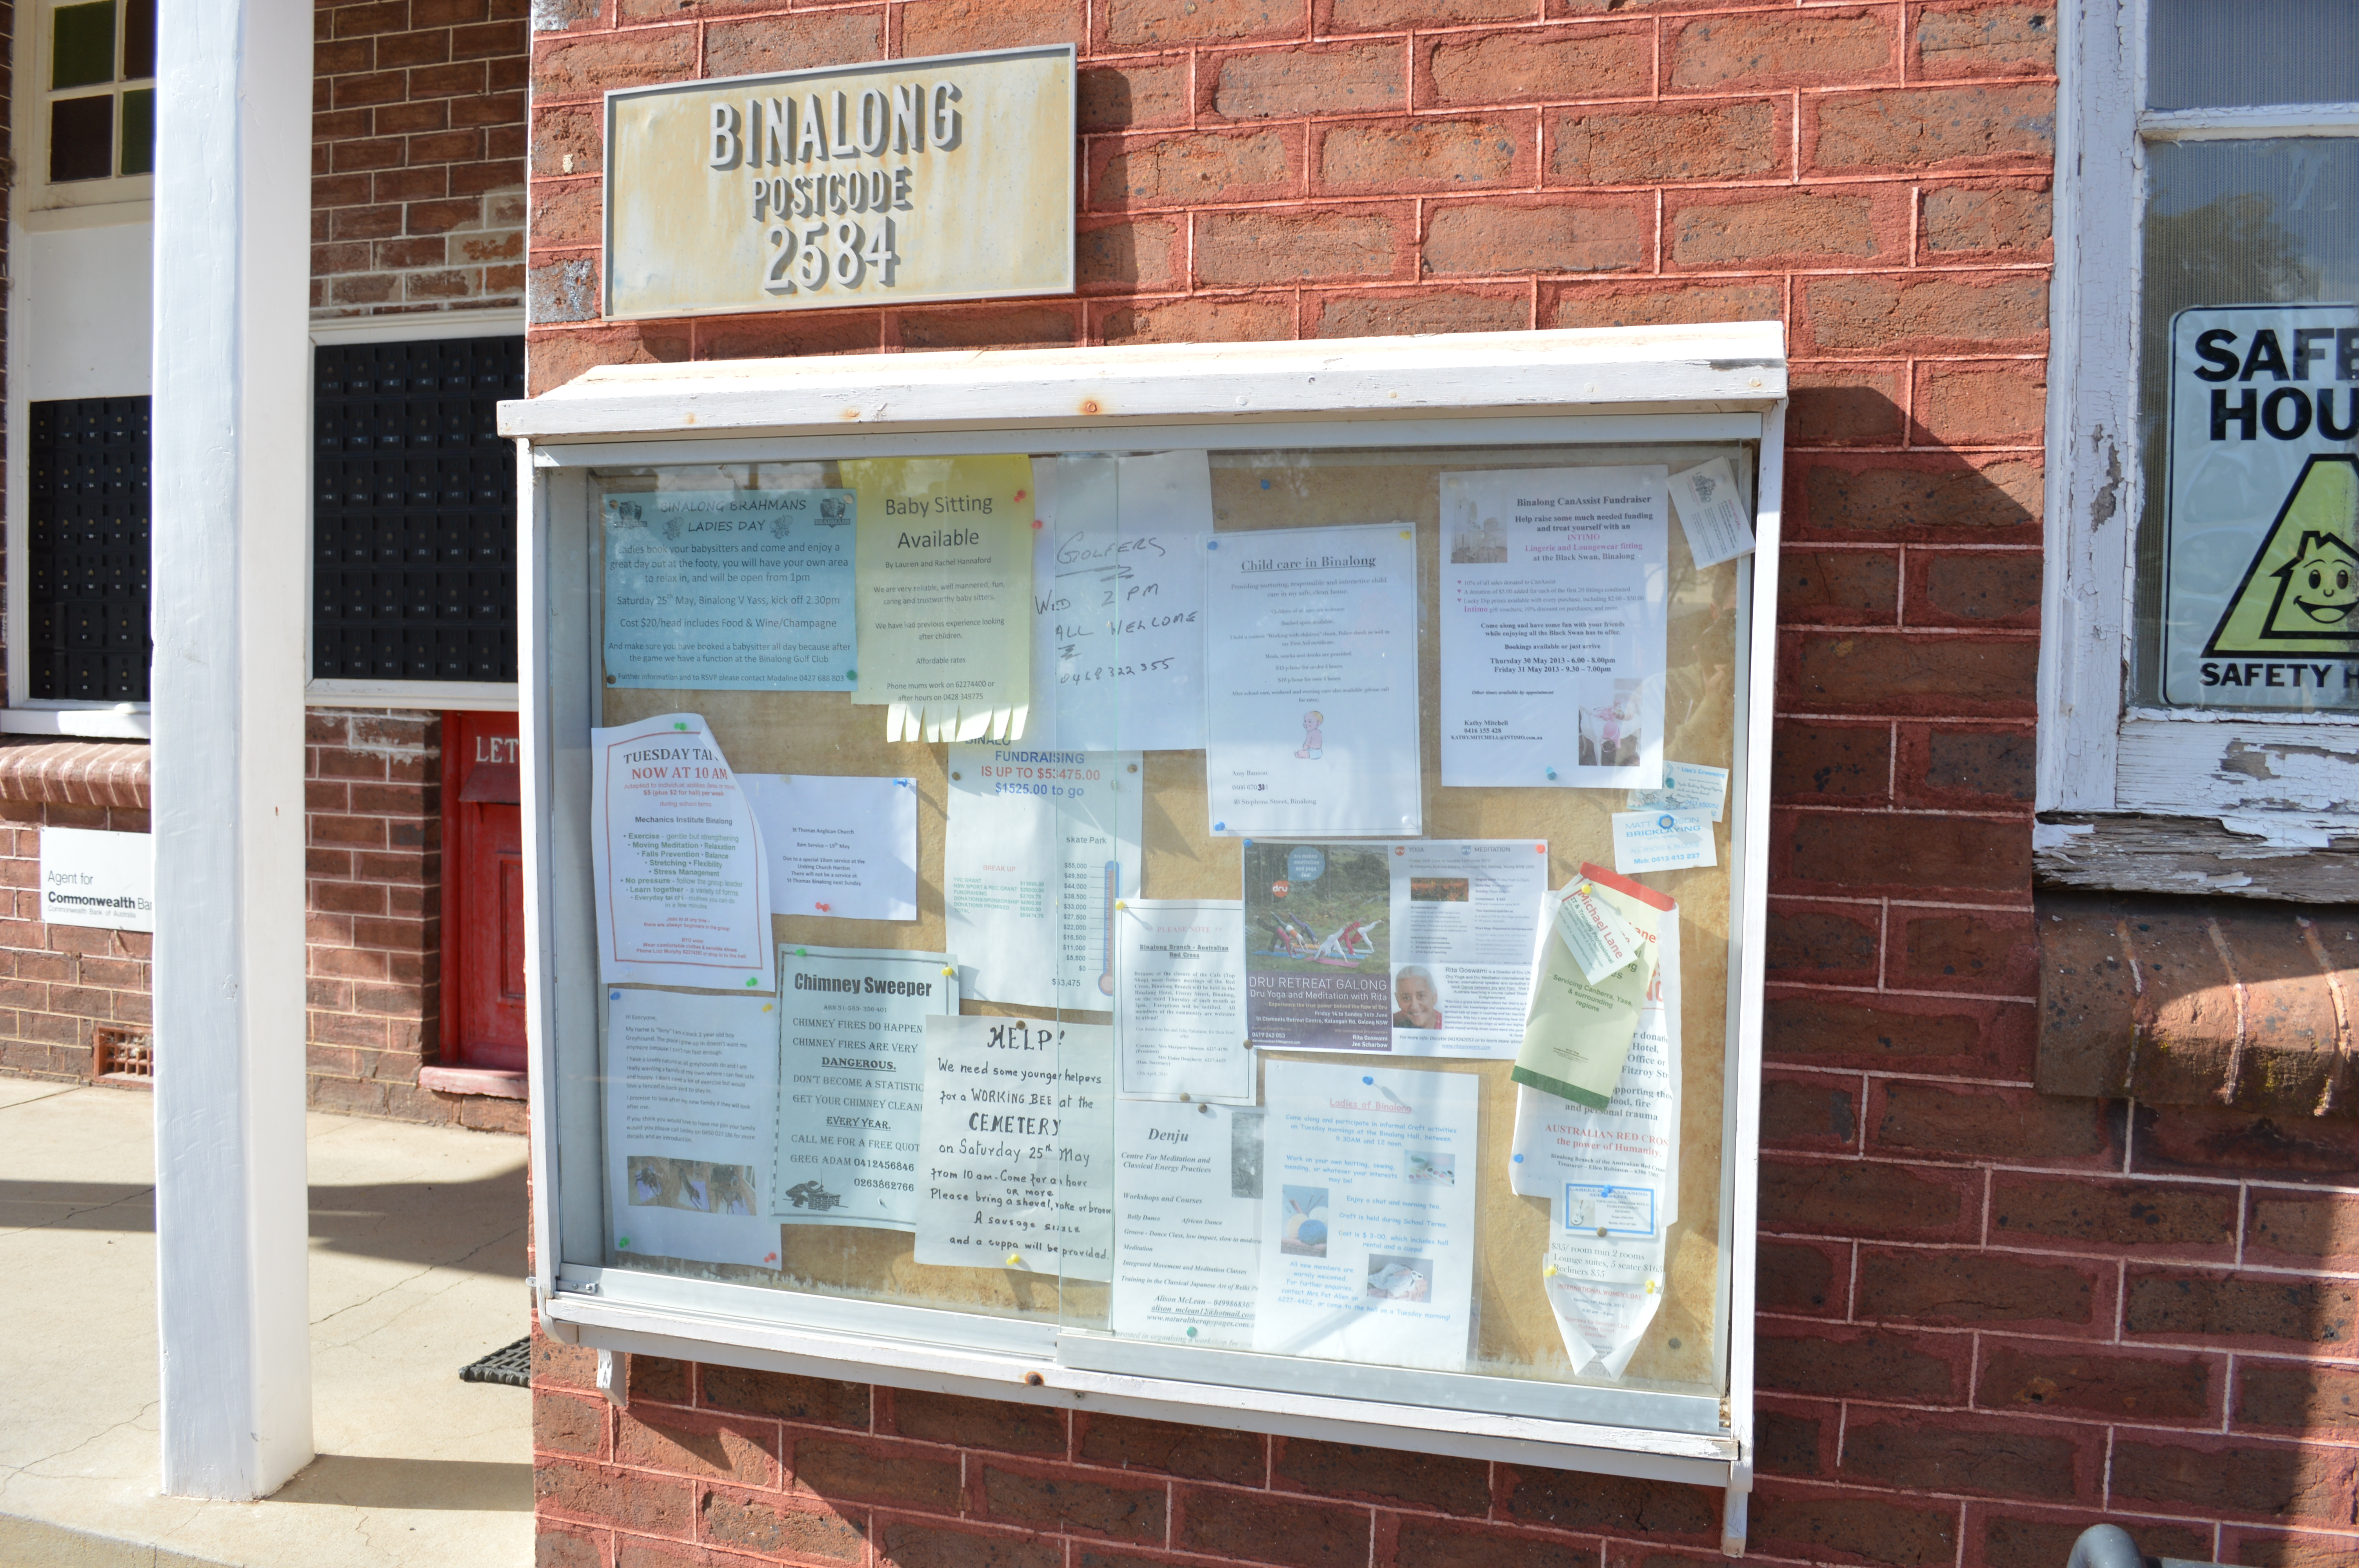 File:Binalong Post Office Noticeboard.JPG